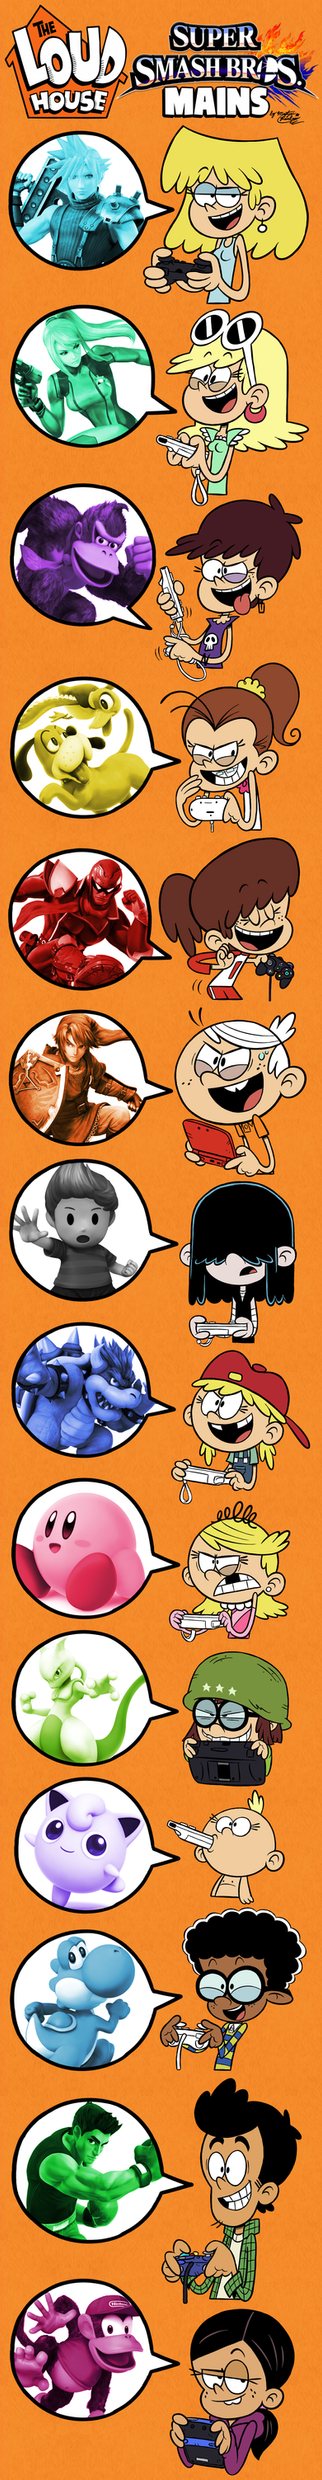 THE LOUD HOUSE and their SMASH BROS. Mains! by Master-Rainbow